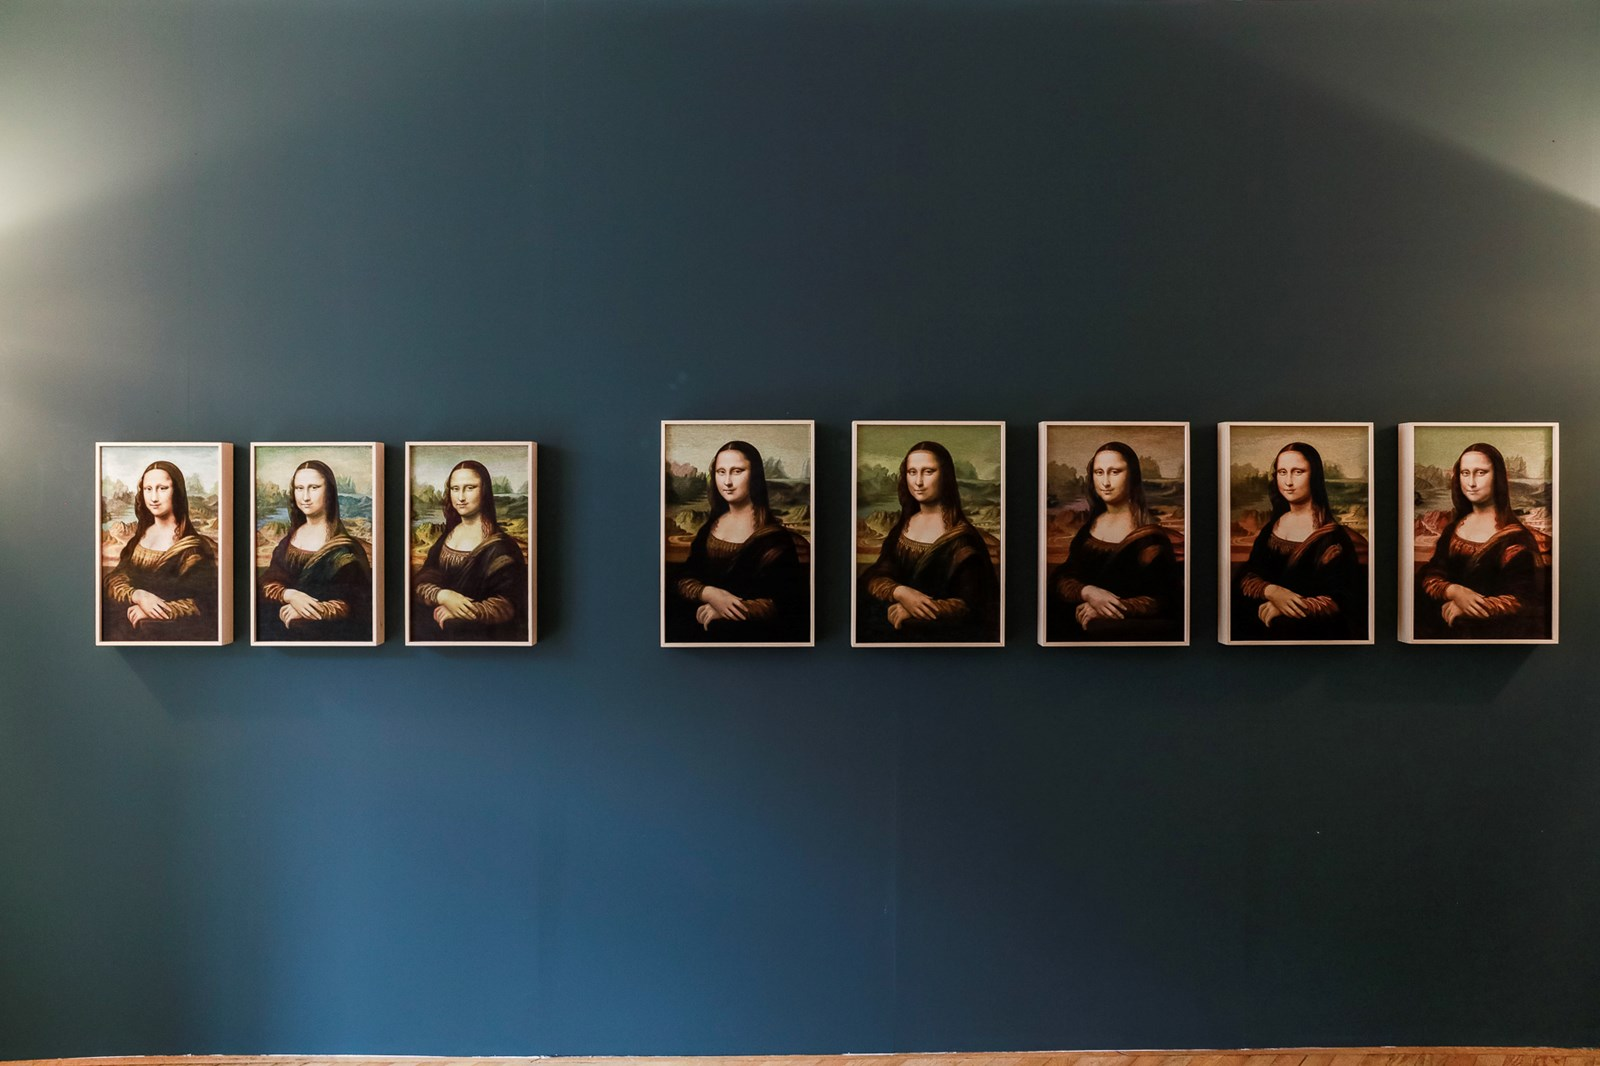 Mona Lisa and the others from the North - by Kyungah Ham